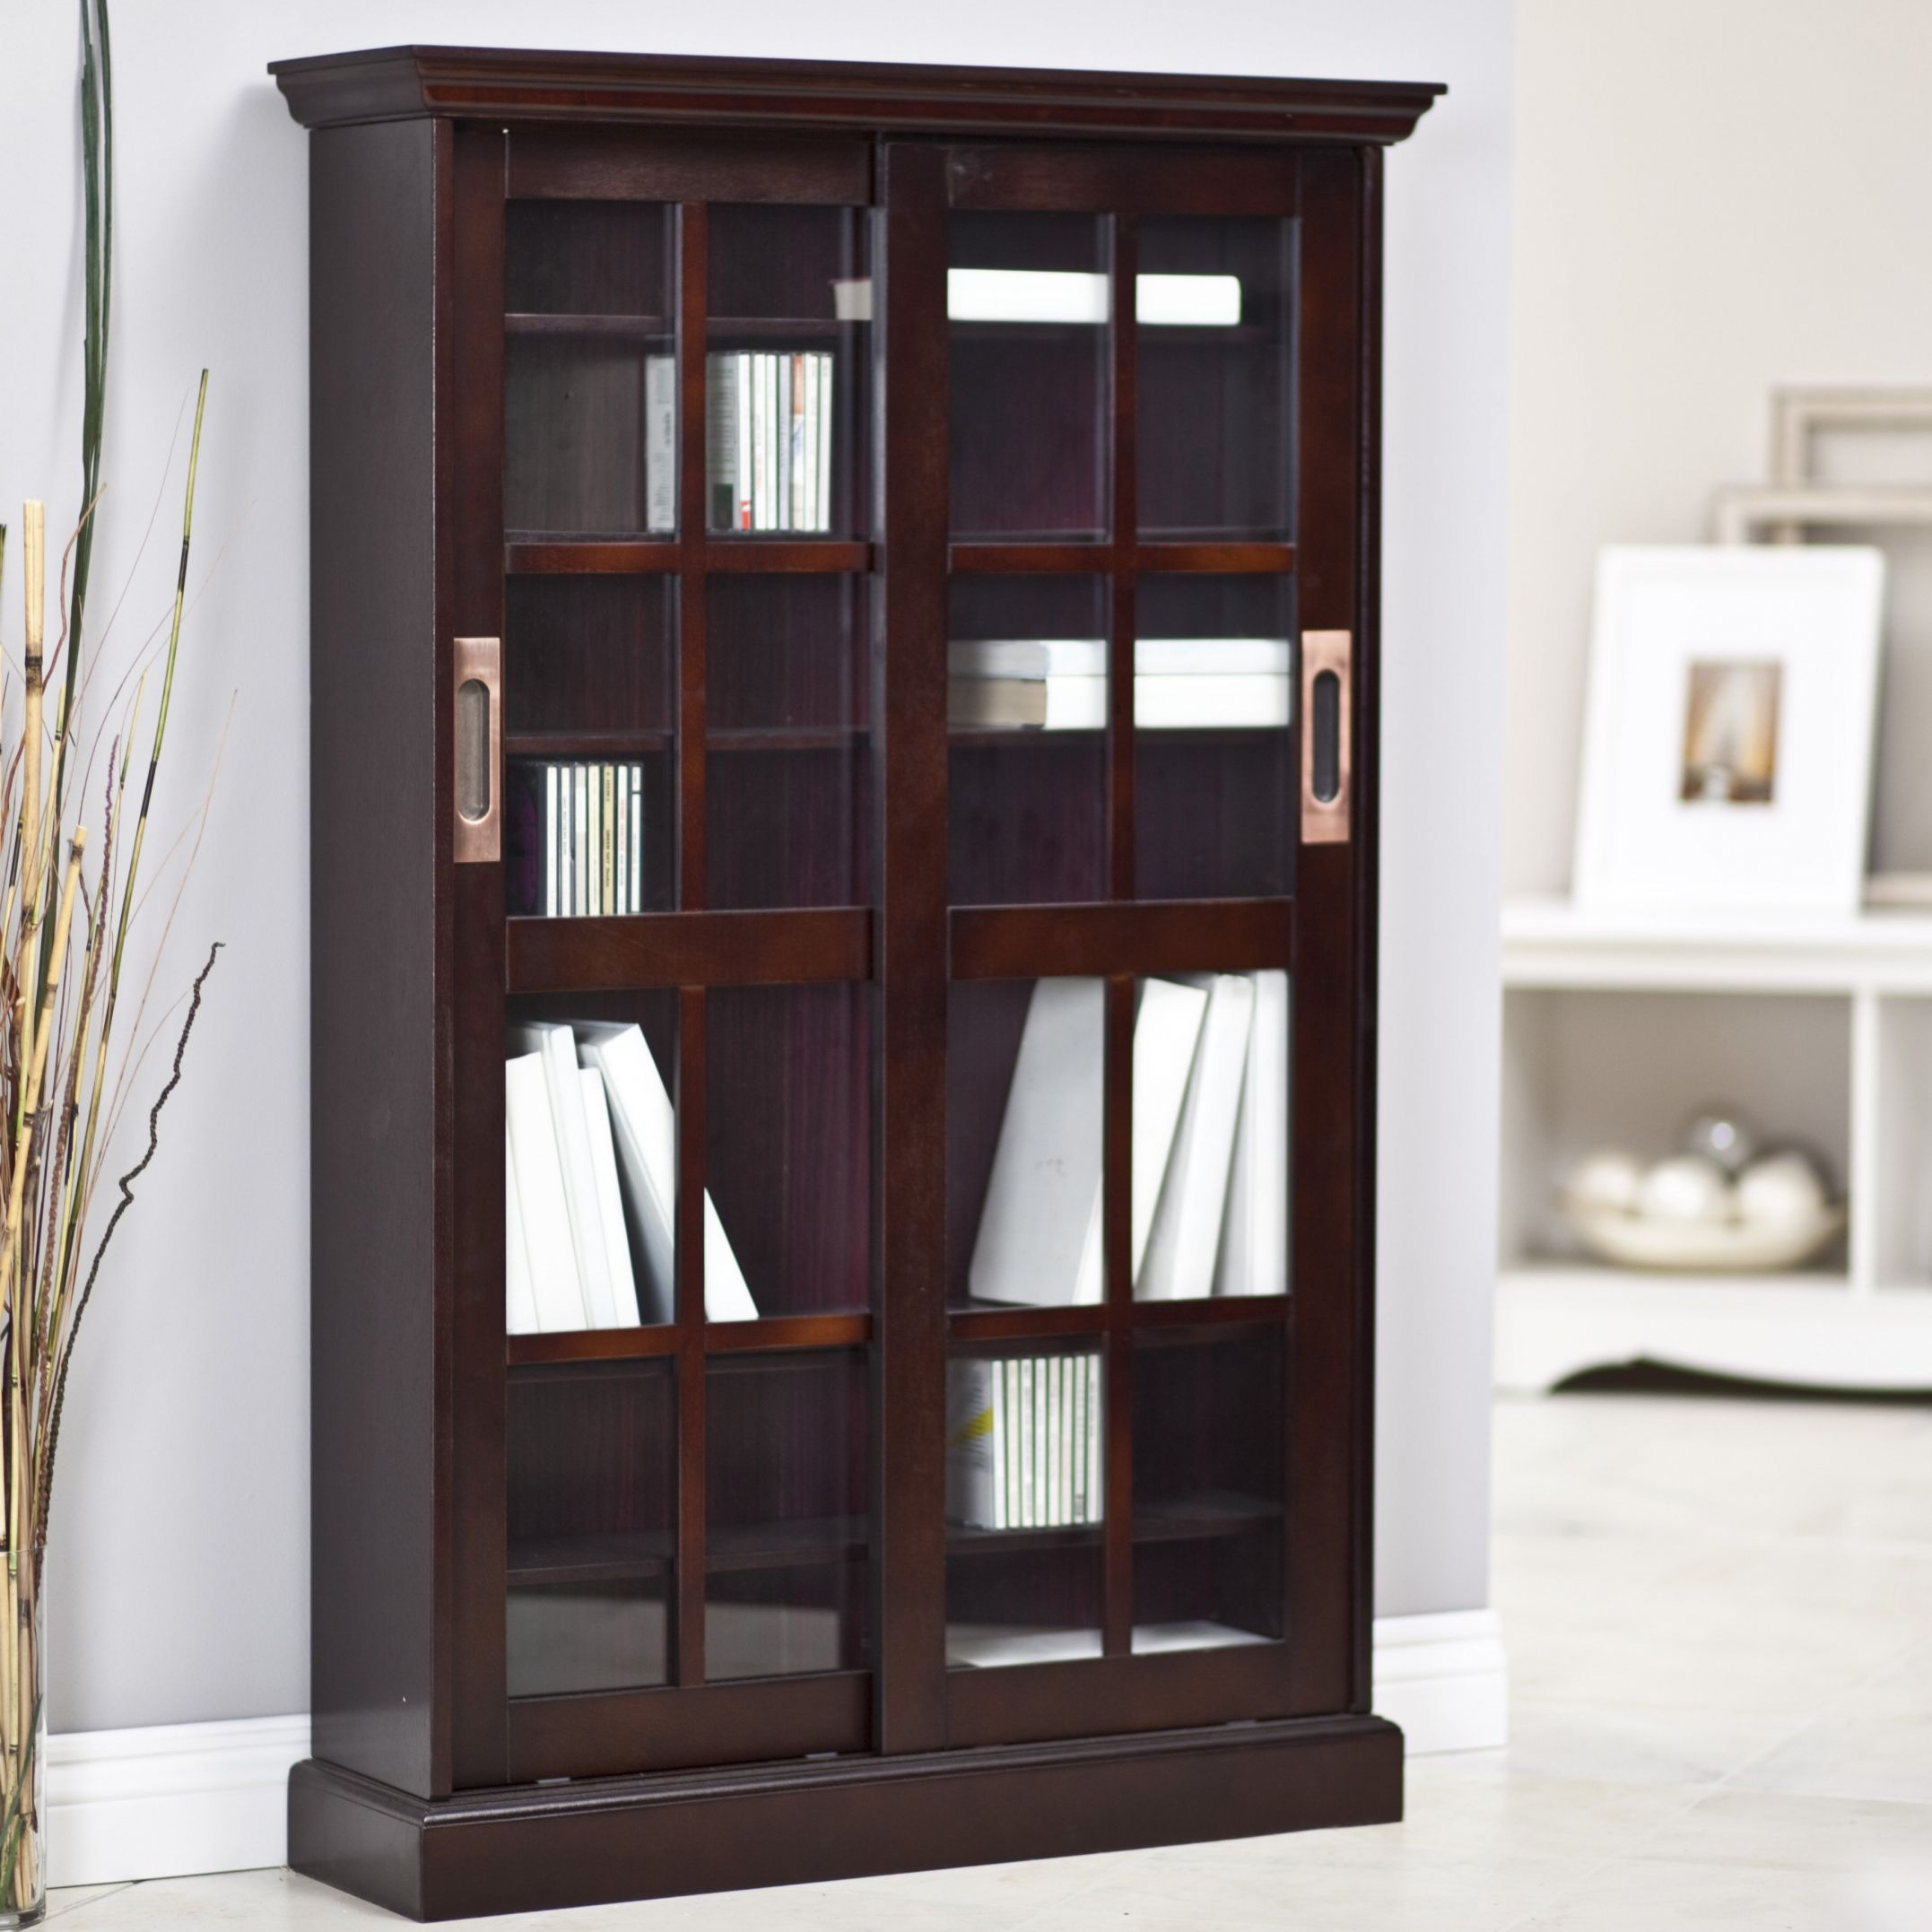 Dvd Storage Cabinet With Sliding Glass Doors | http ...